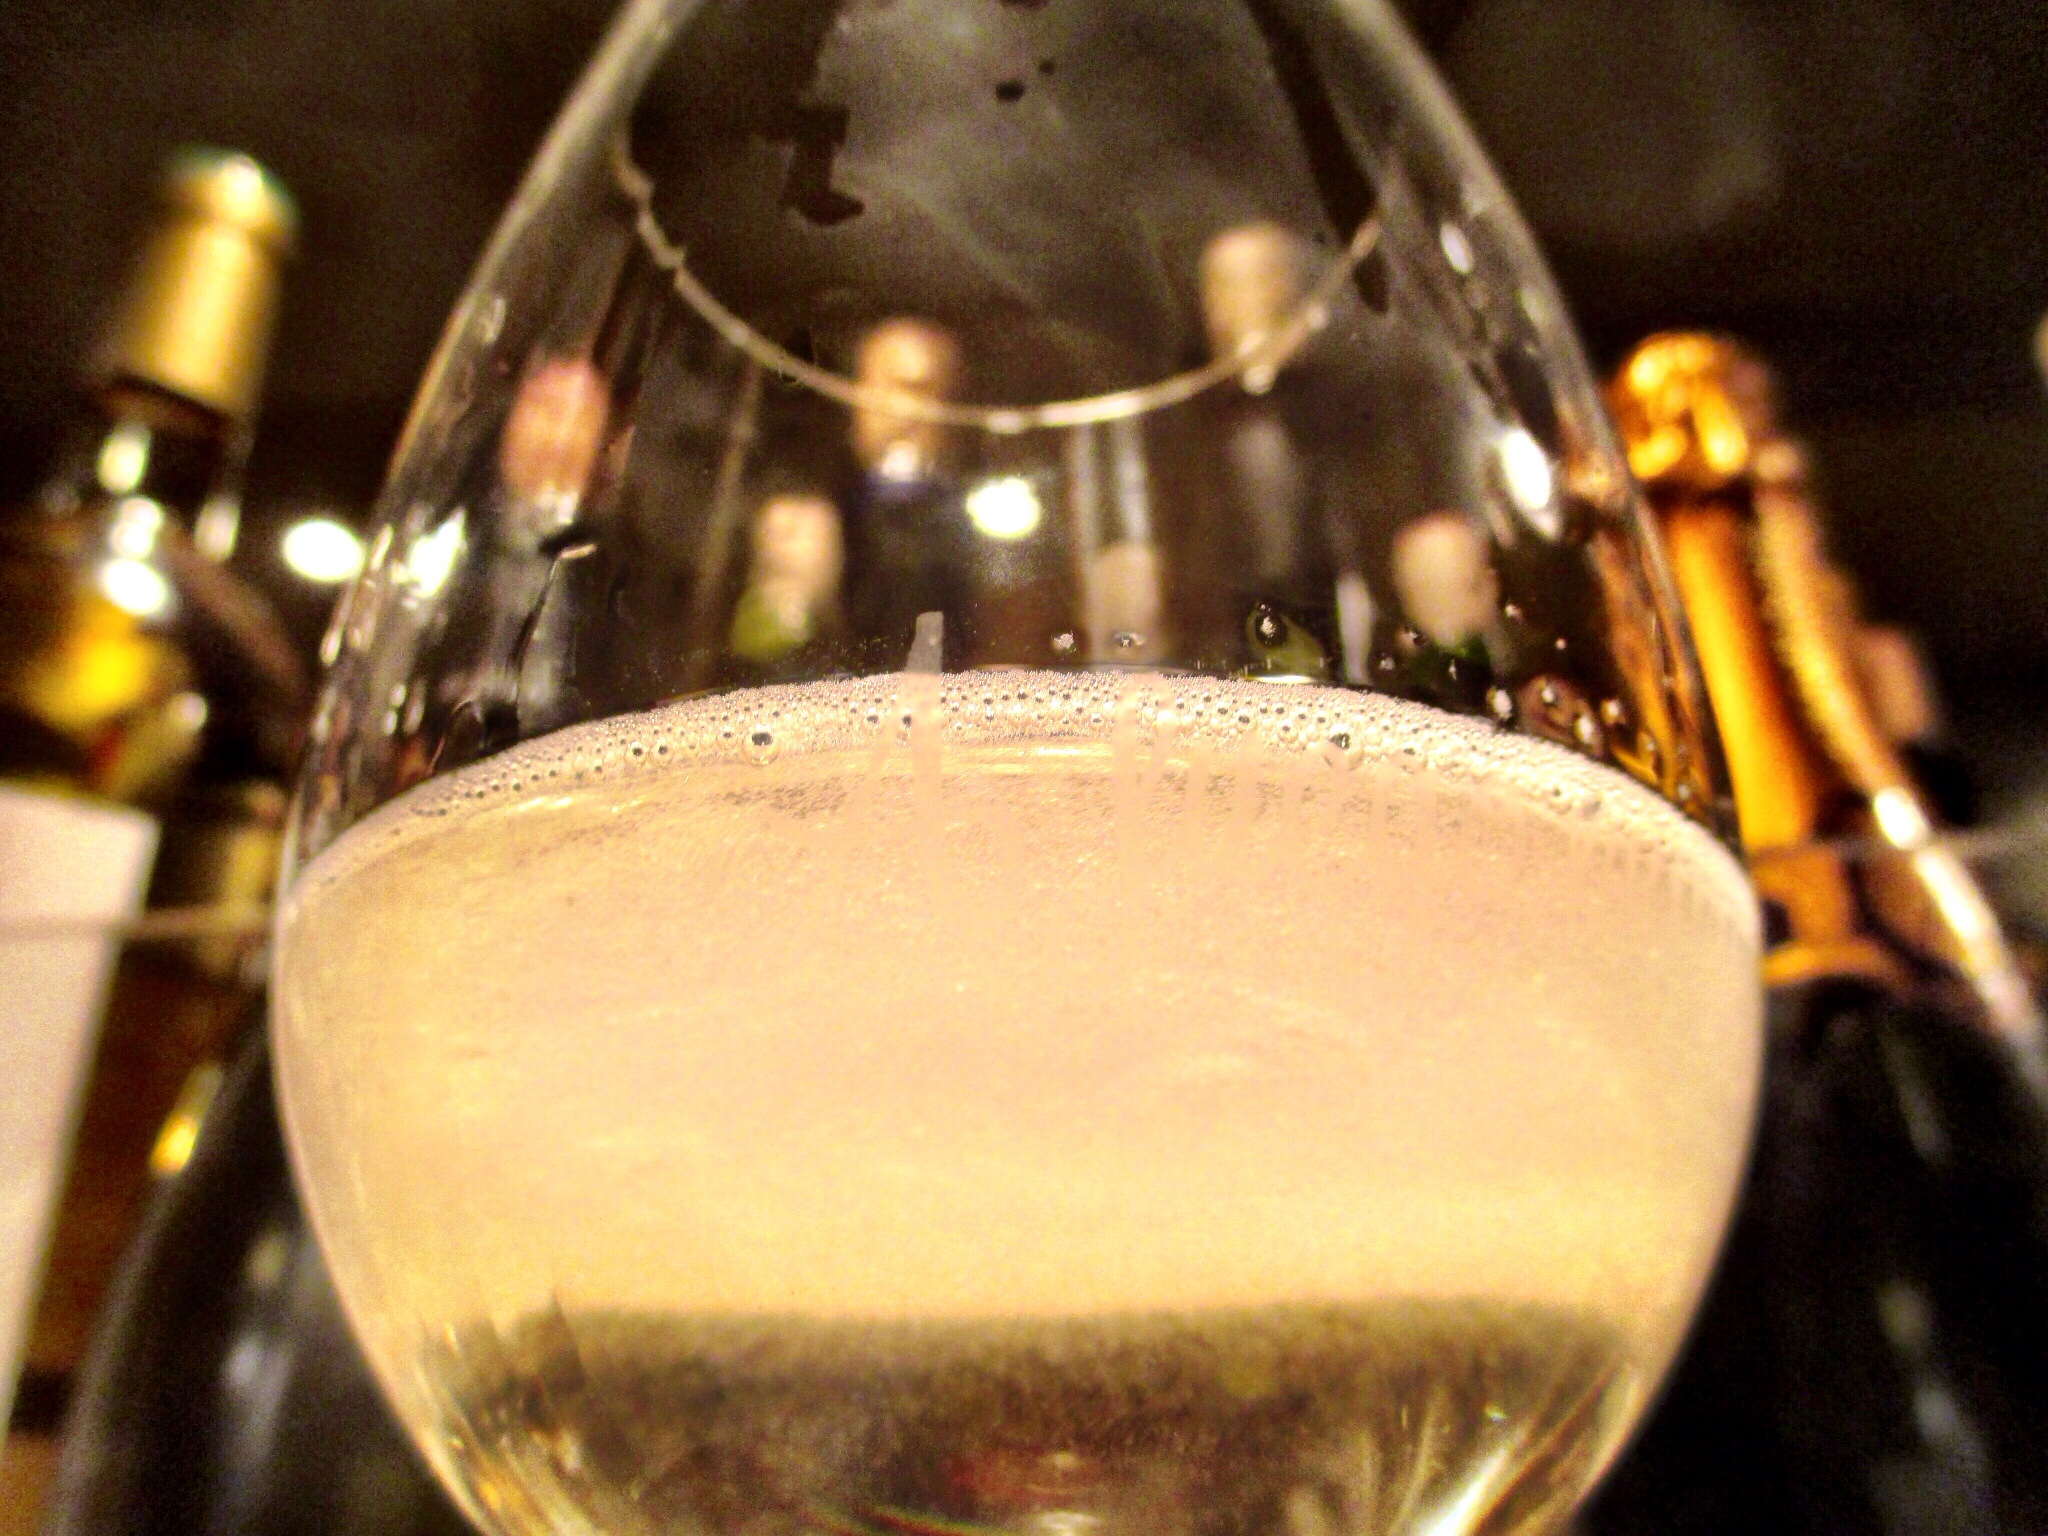 San Sebastián's signature cider is poured from high overhead to aerate it, giving it a living, effervescent bite